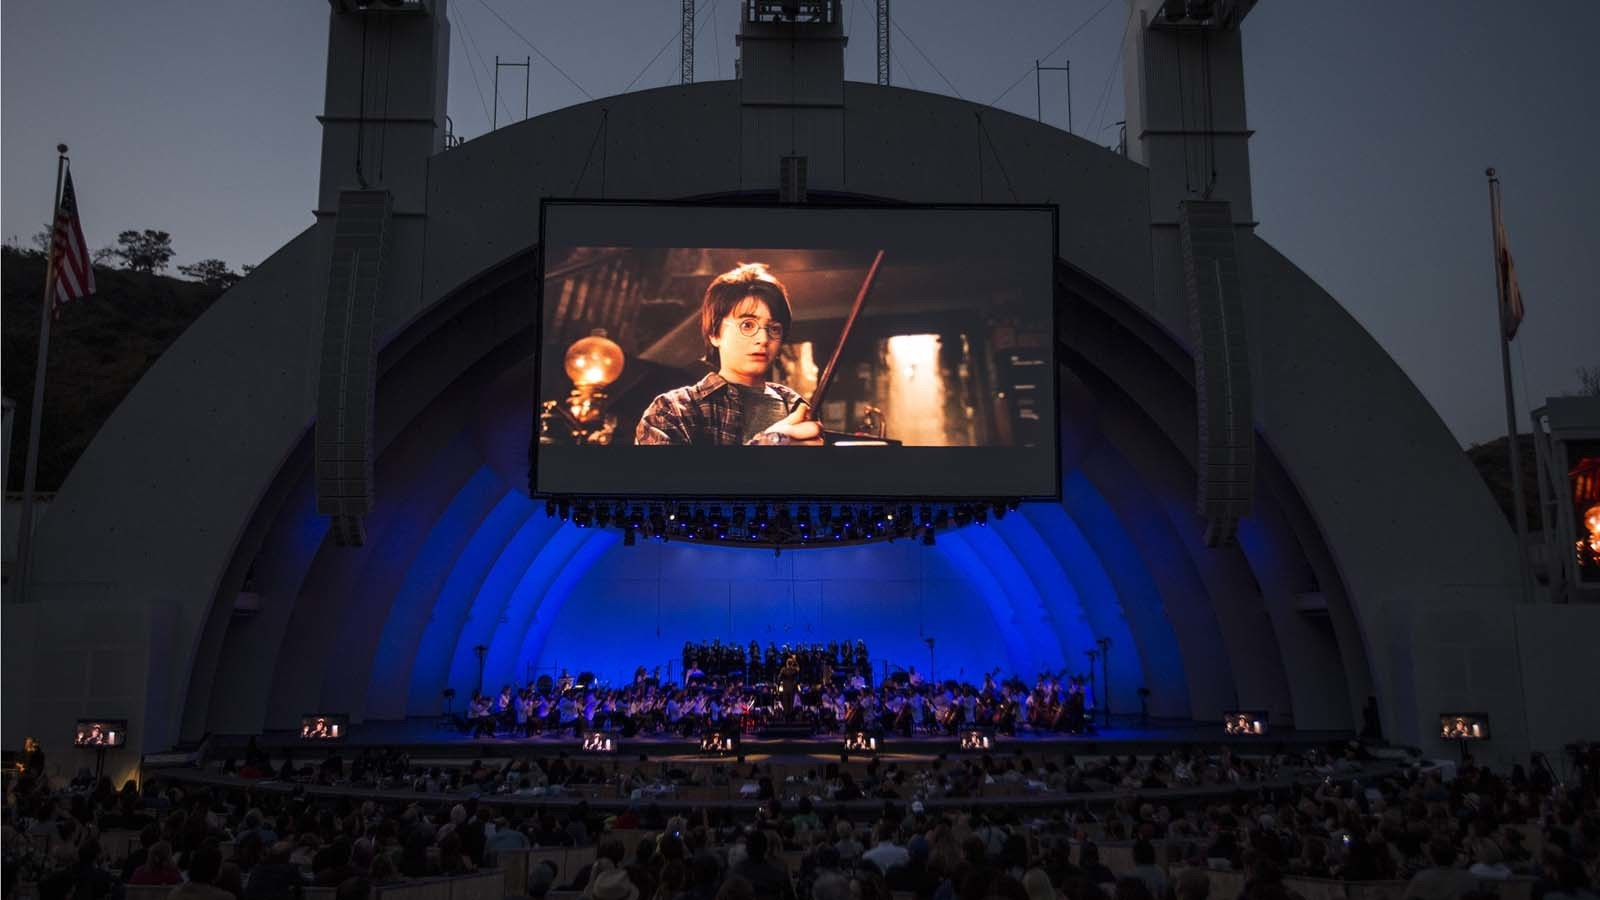 Hollywood Bowl Concerts >> Harry Potter Concerts Return To Hollywood Bowl With Chamber Of